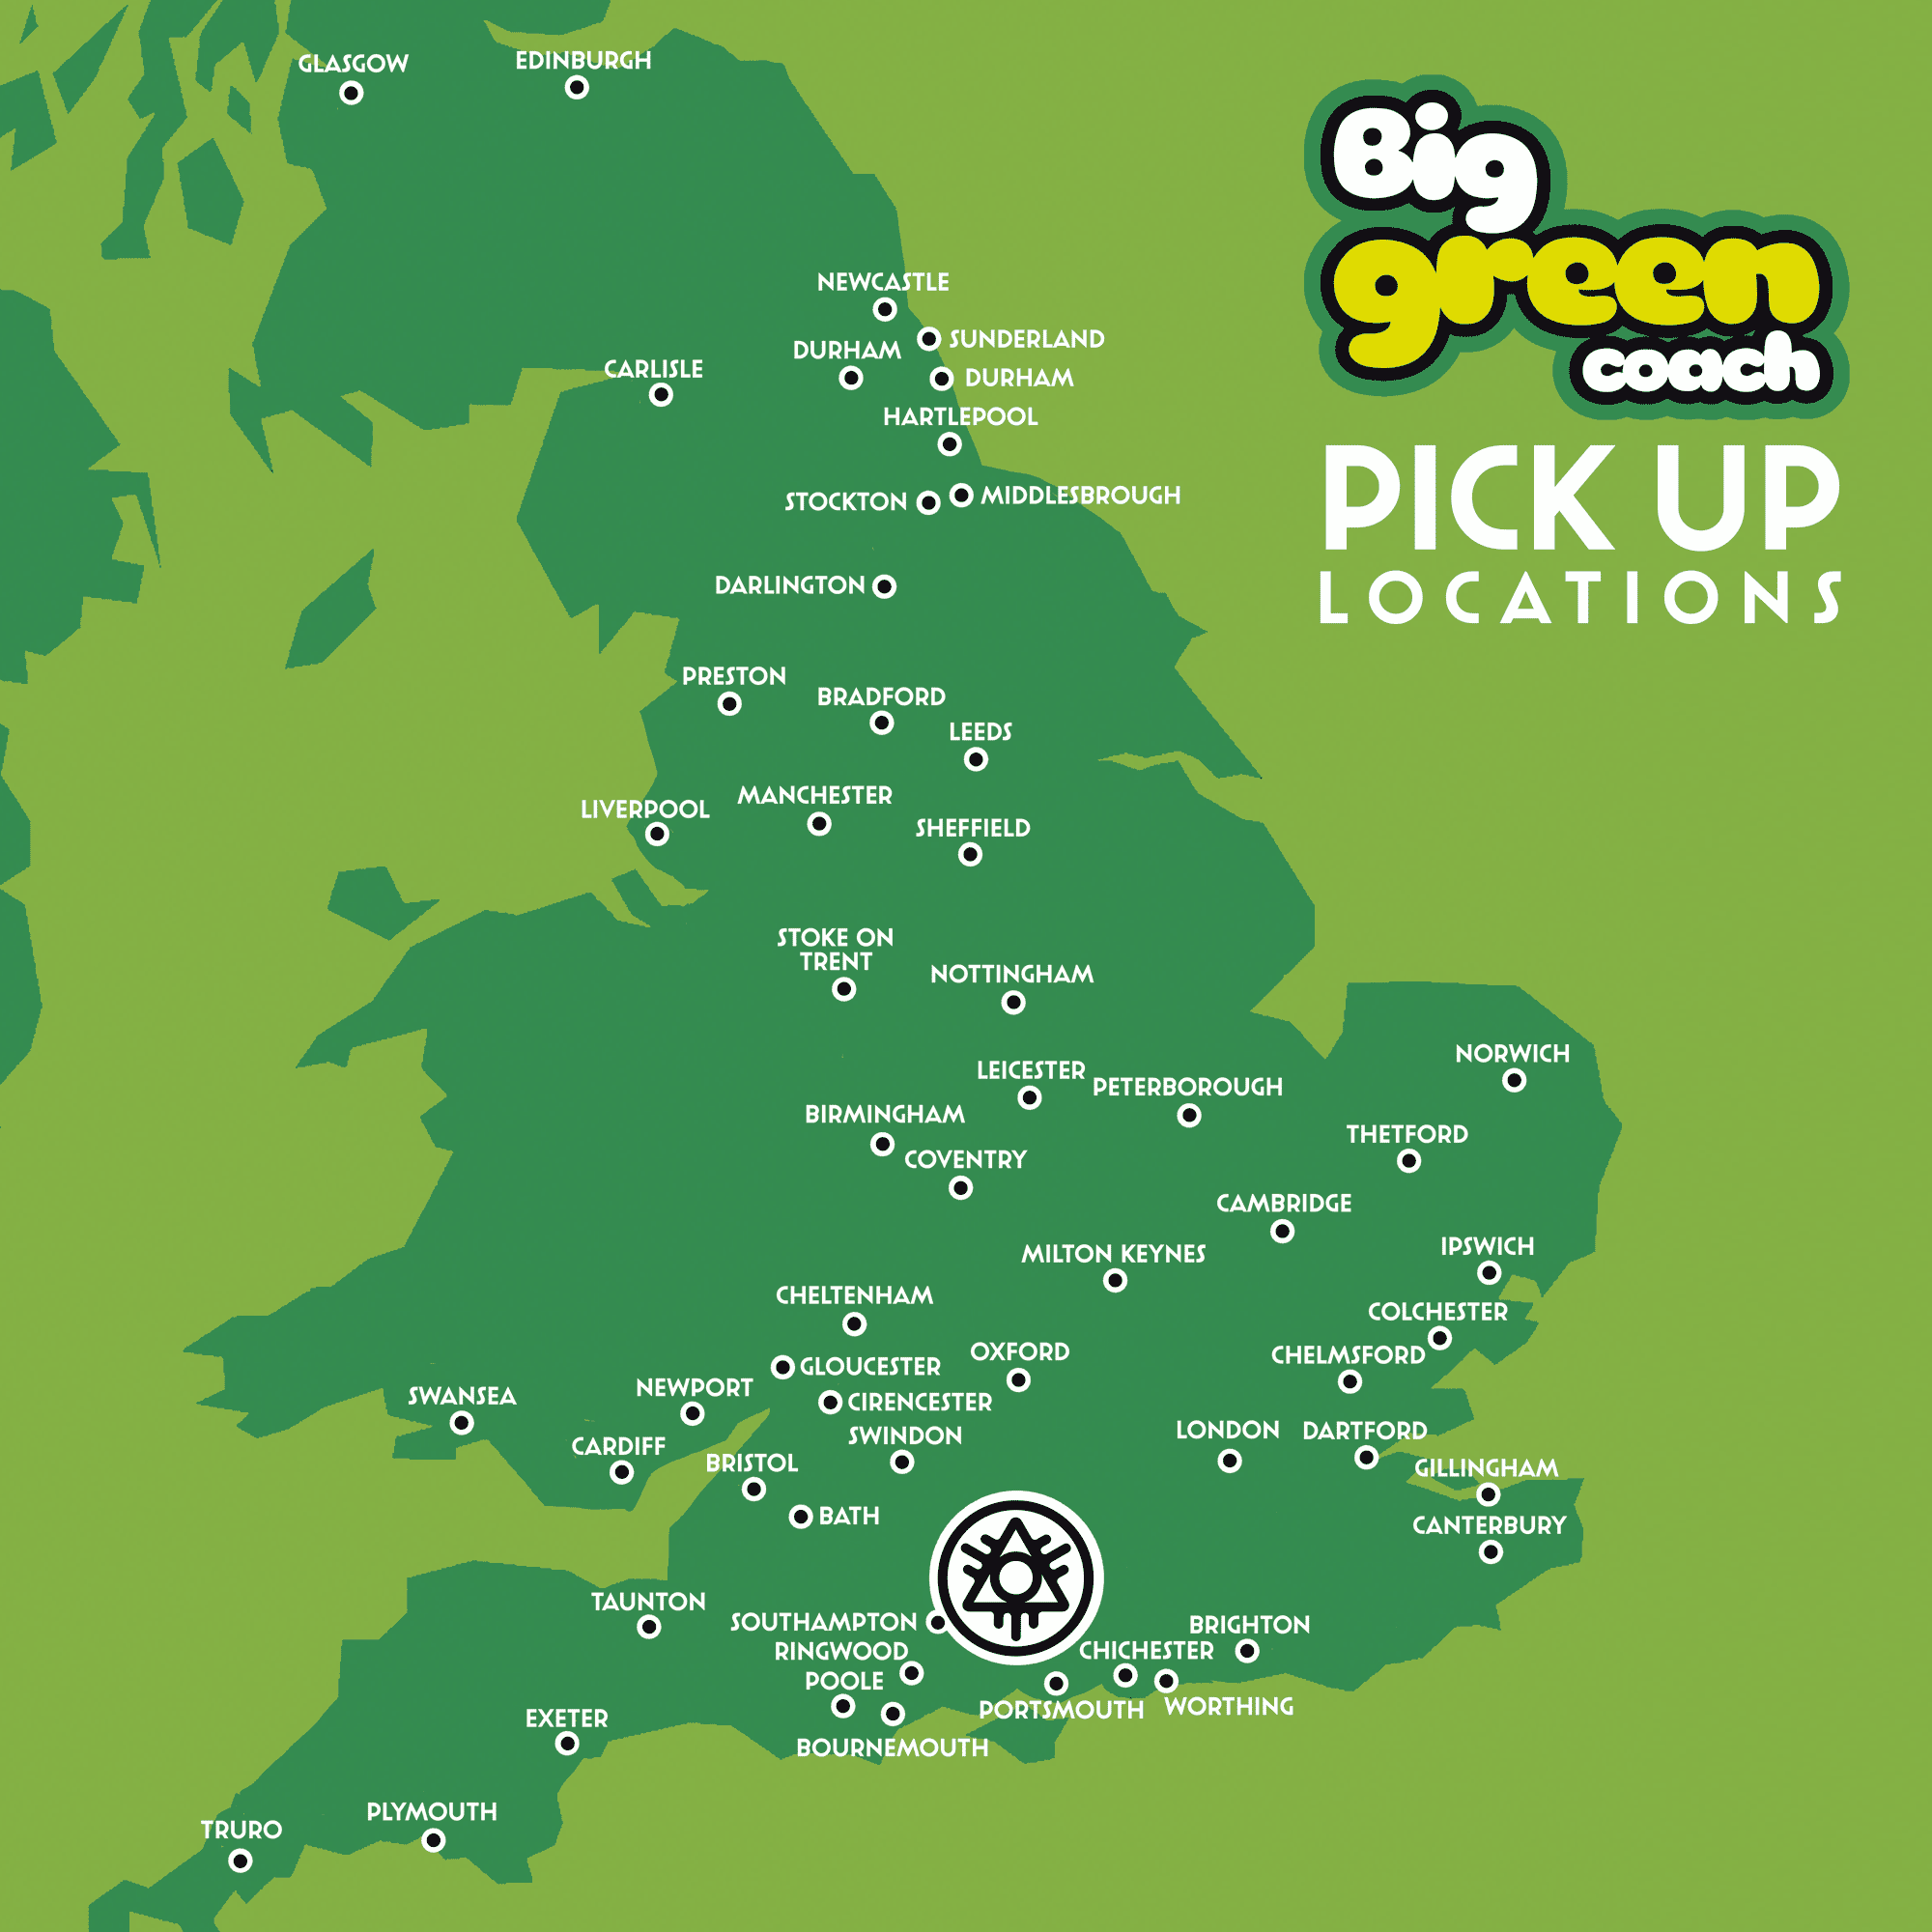 Big Green Coach from 55 locations!